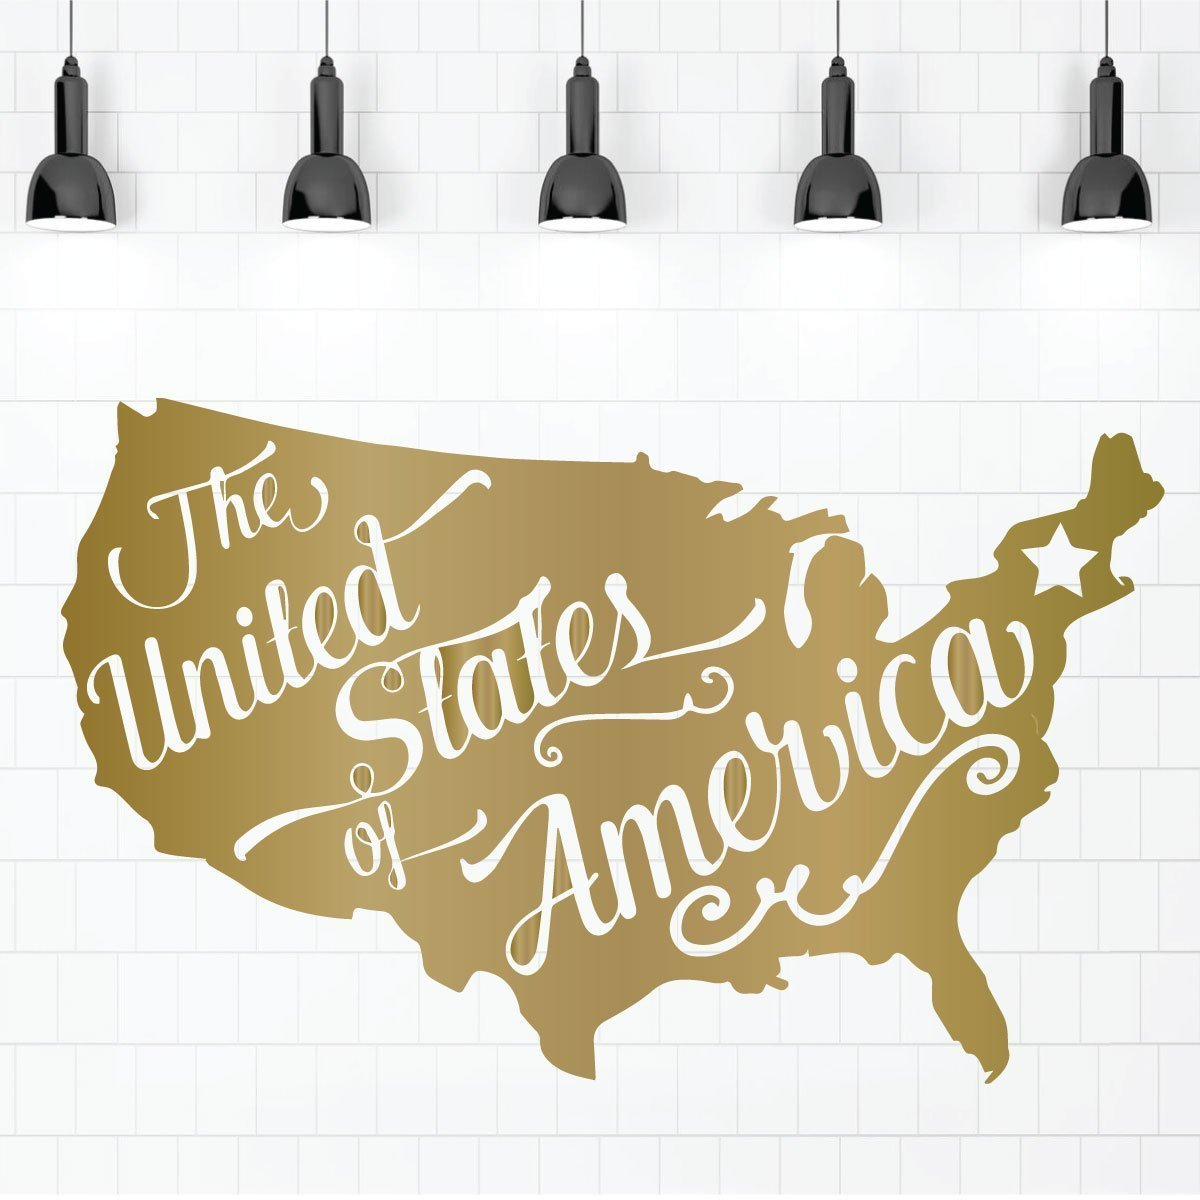 Patriotic Wall Decals - United States Map - The United States Of America